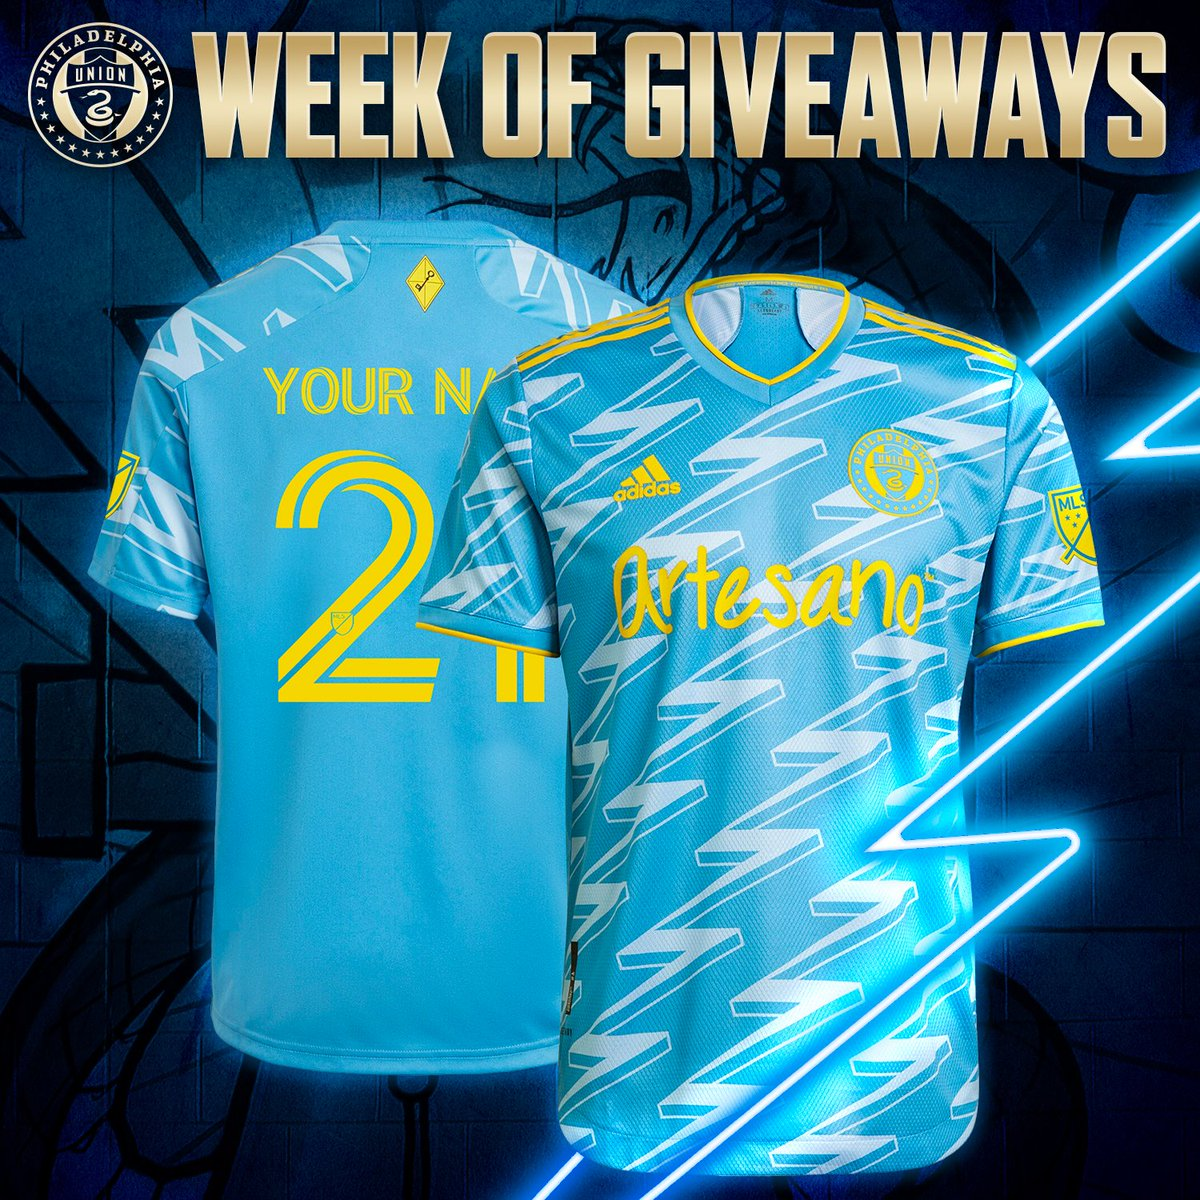 U THANKS U! 💙 Day 1 our annual Week of Giveaways! First up, enter to win a customized BY⚡️U kit! 🔁 RT 💙 Like 💬 Reply with your preferred size, name & number ✅ GOOD LUCK #DOOP